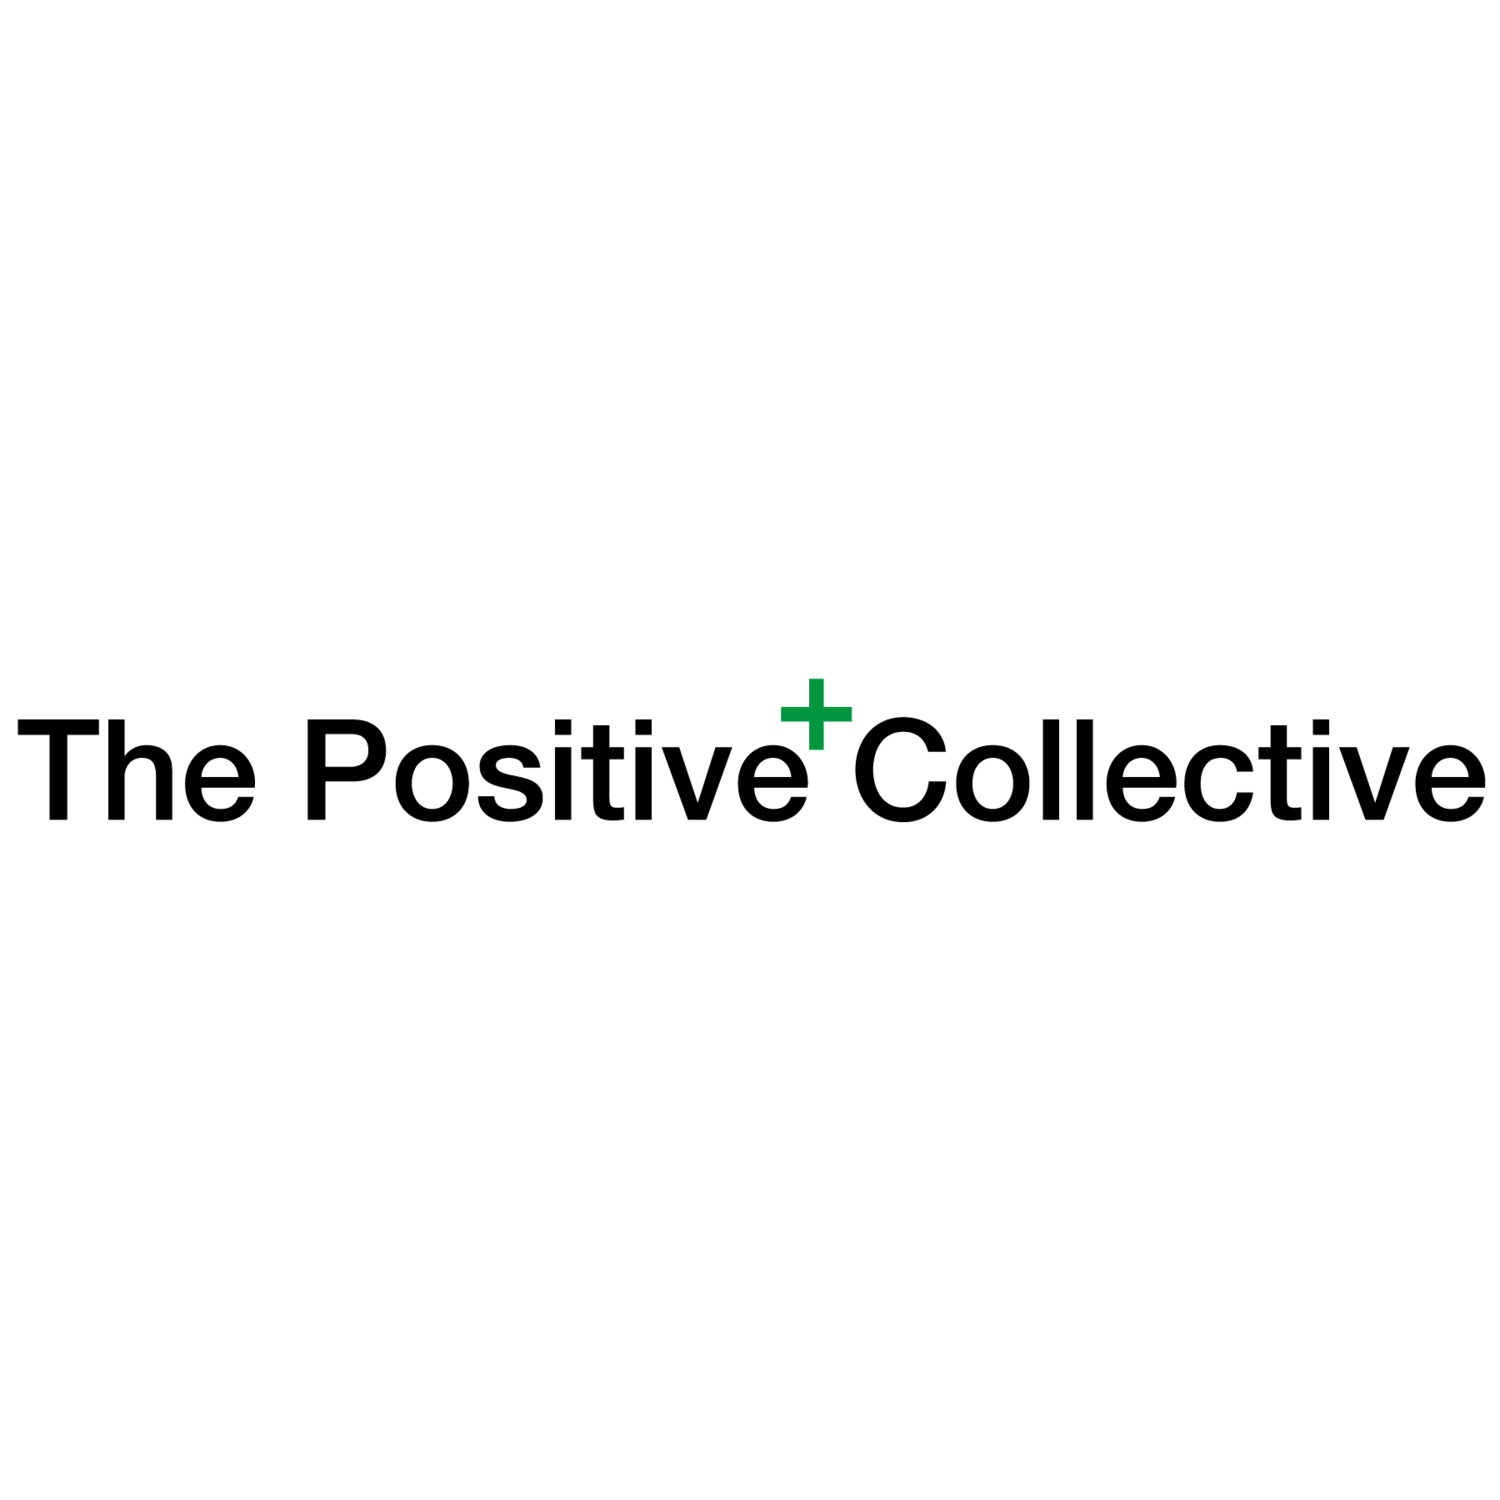 The Positive Collective